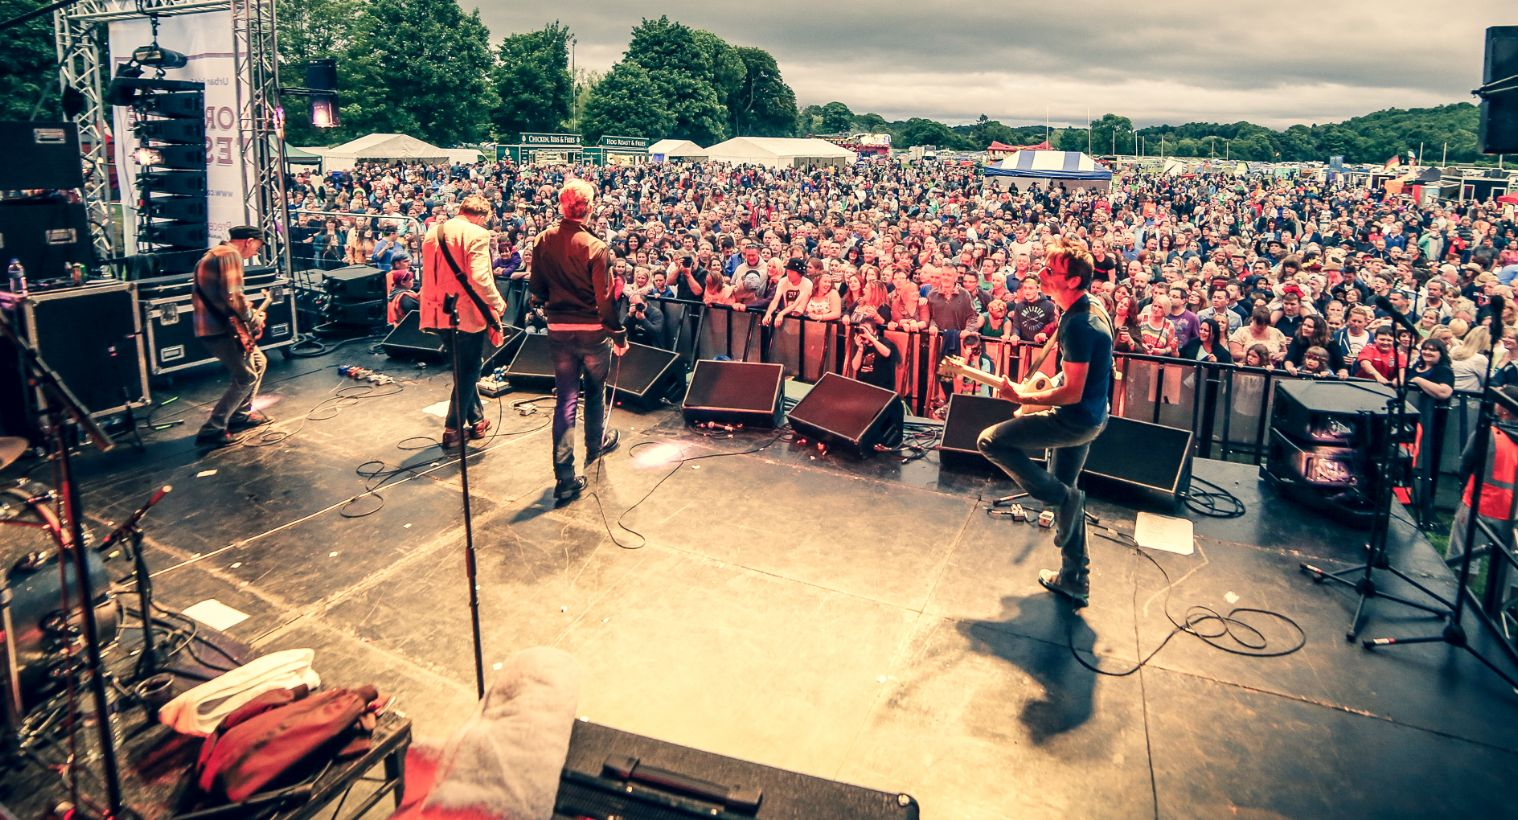 The Undertones headlining Corbridge Festival in 2017